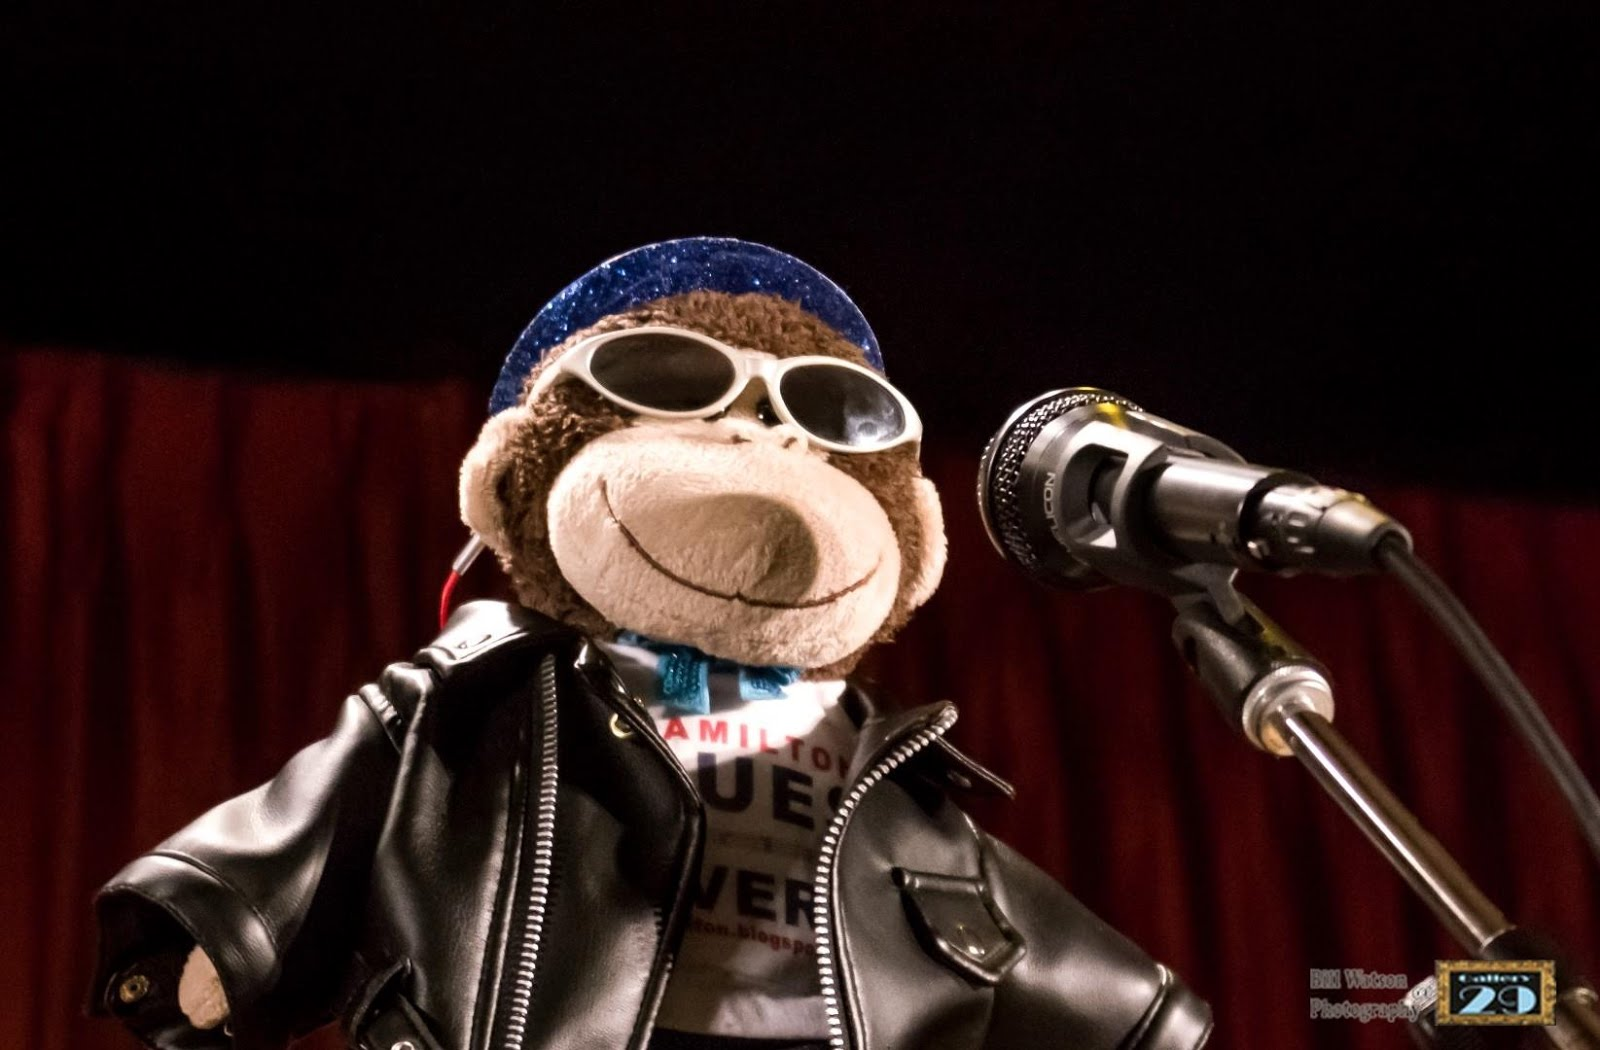 Follow our Monkey Mascot on His Music Lovin' Adventures